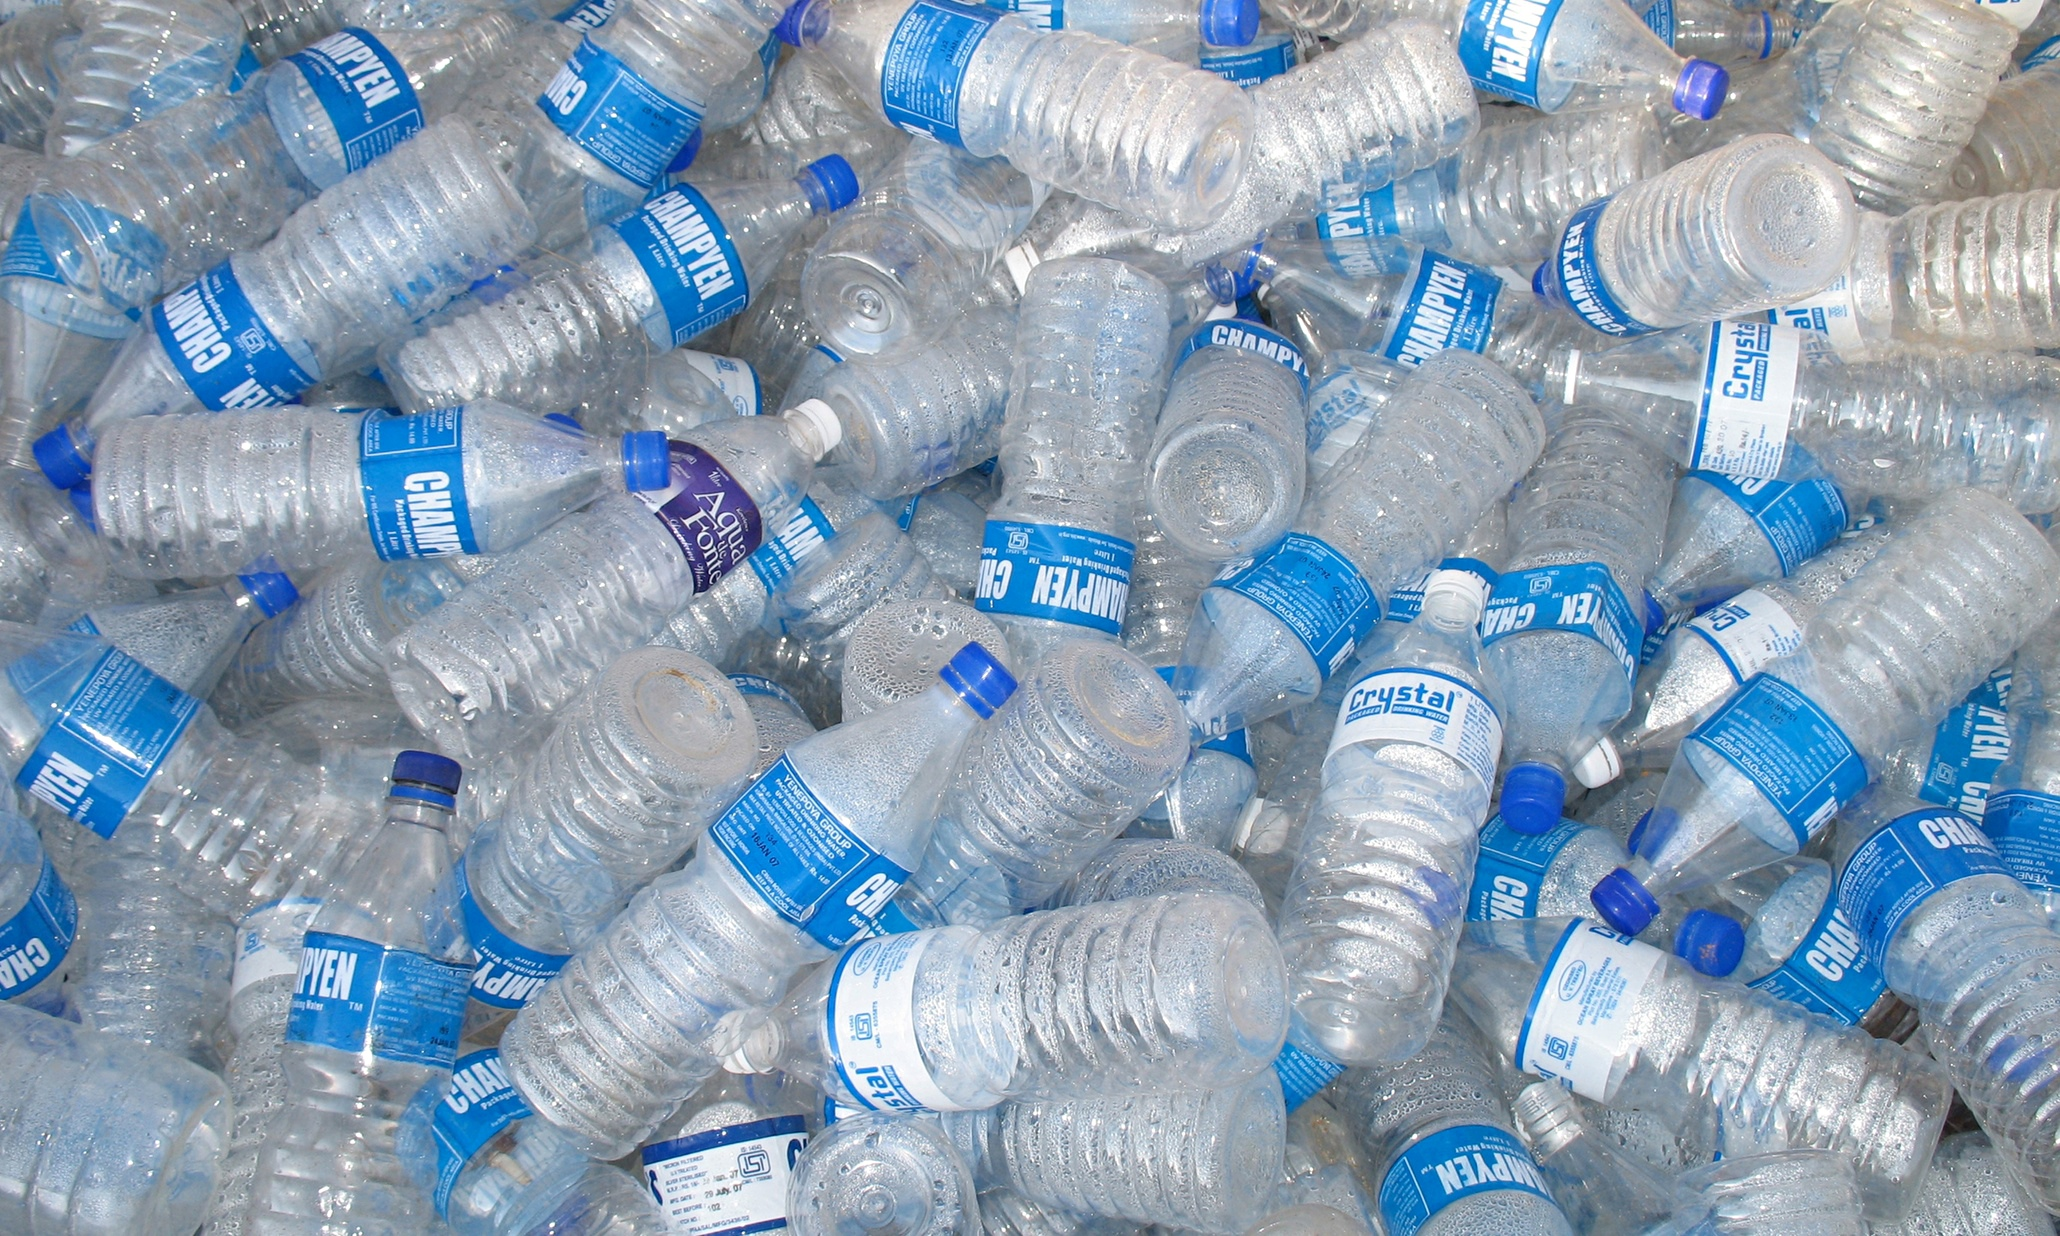 The Cold Truth About Our Thirst For Bottled Water Lucy